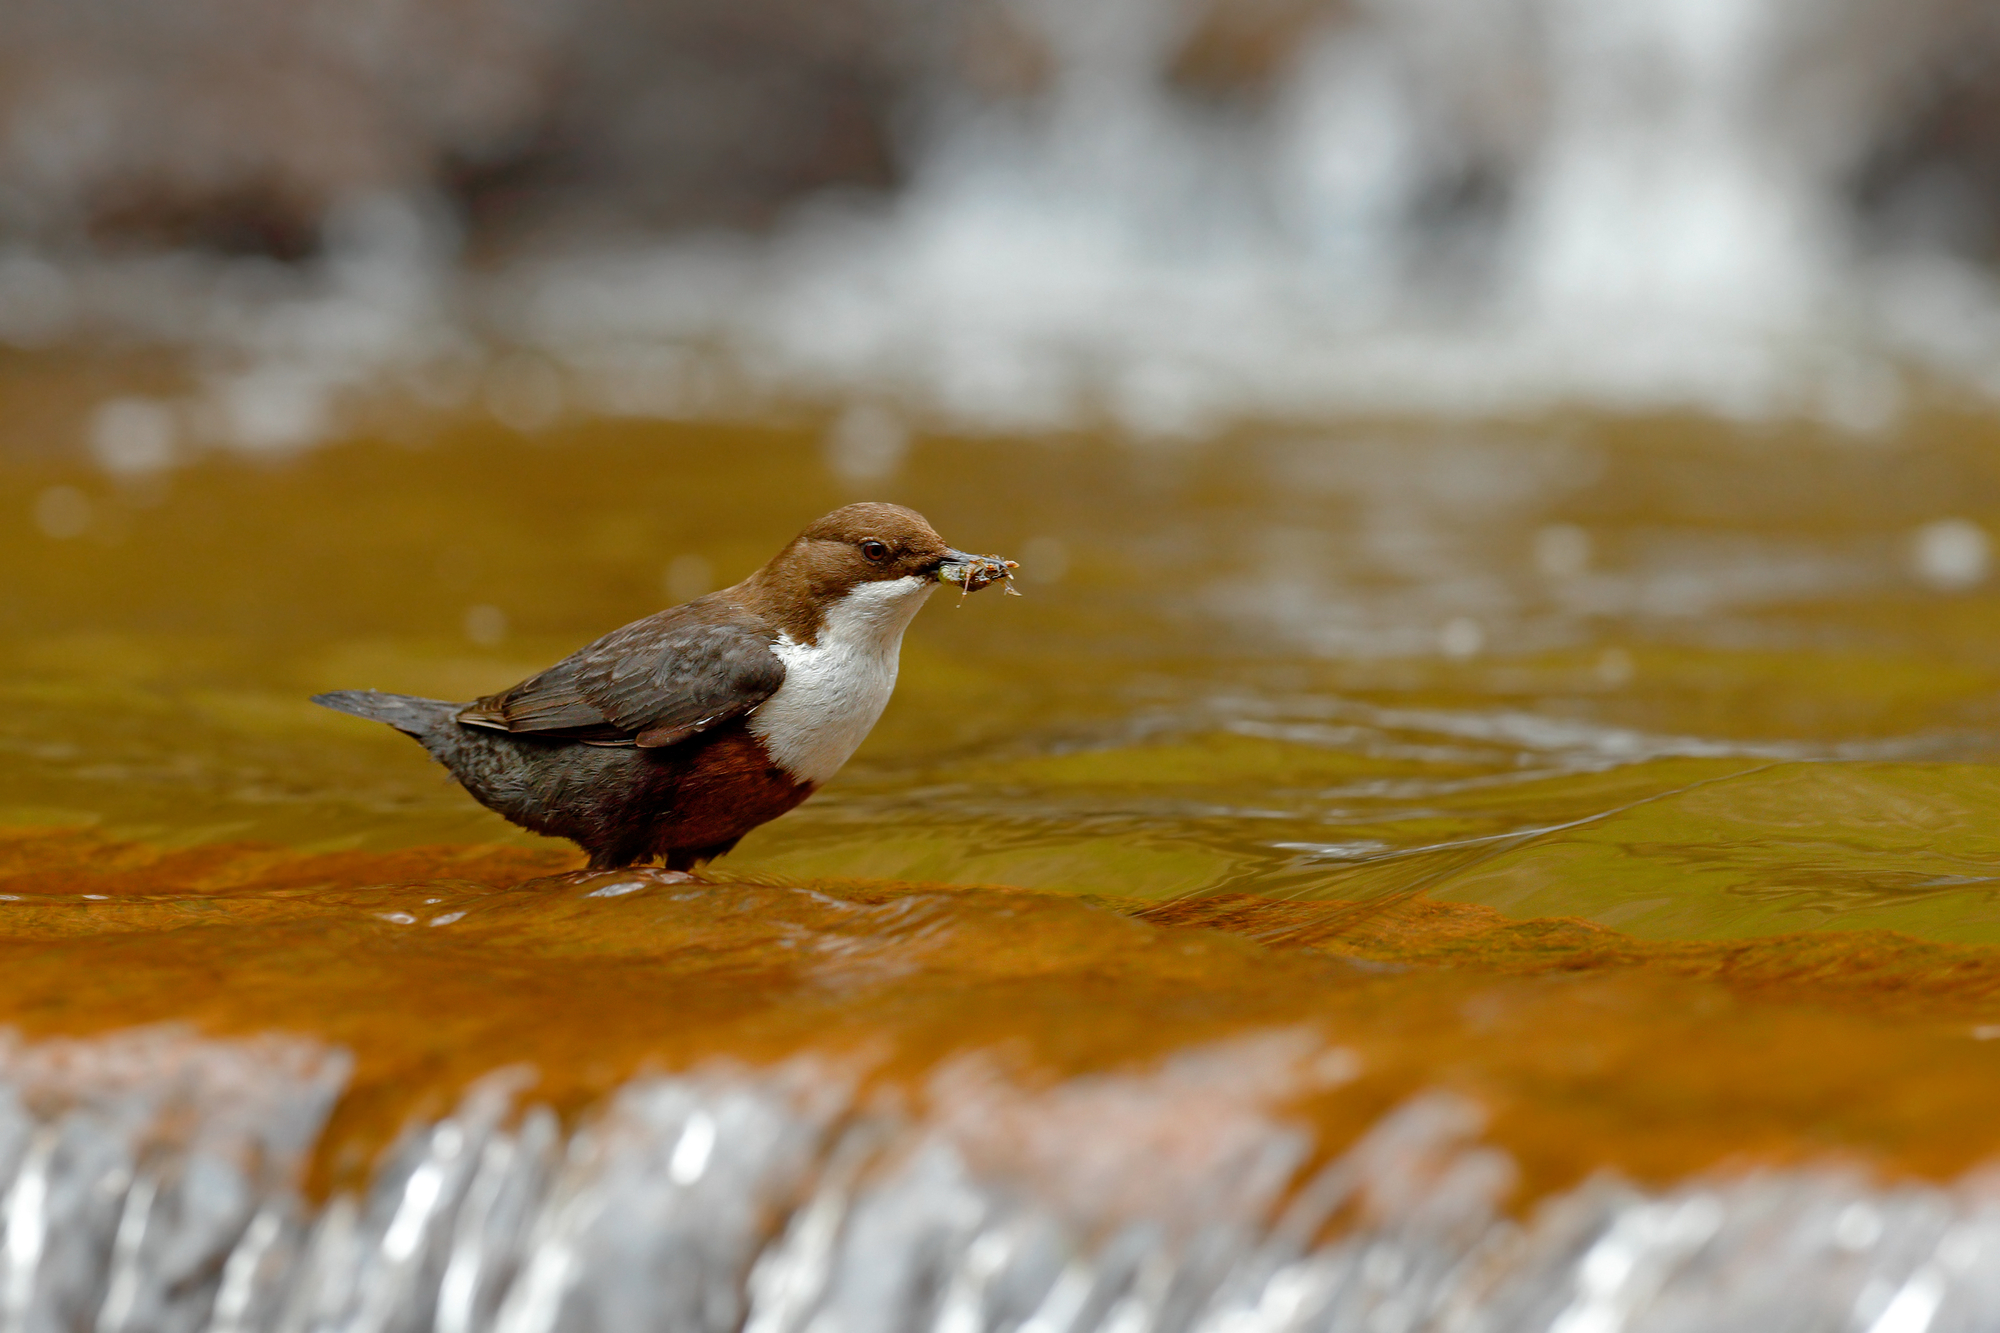 Through the discovery of plastic fragments in the feces and regurgitated food of dippers, scientists have found what they say is the first evidence of river microplastics traveling up the food chain